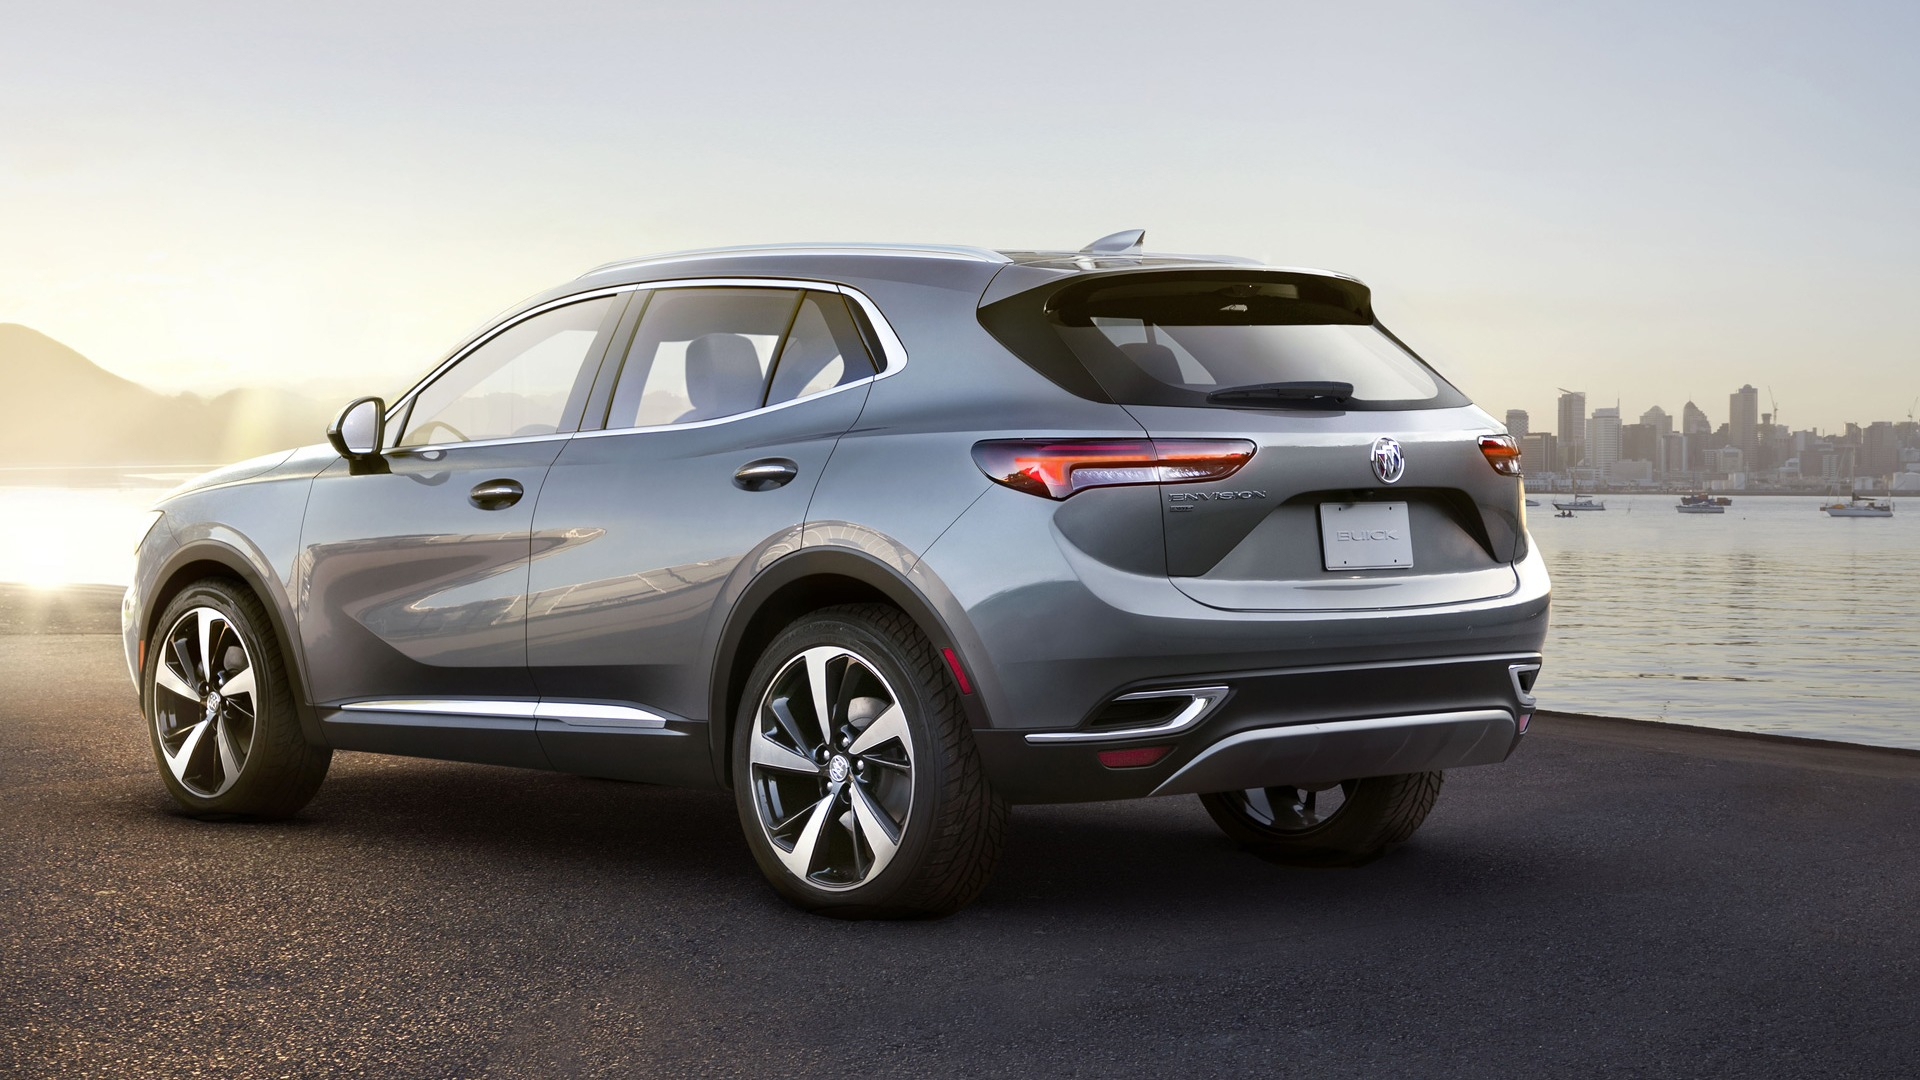 2021 Buick Envision Preview: Bold New Look For Buick's Small Suv Is The 2022 Buick Envision A Good Car